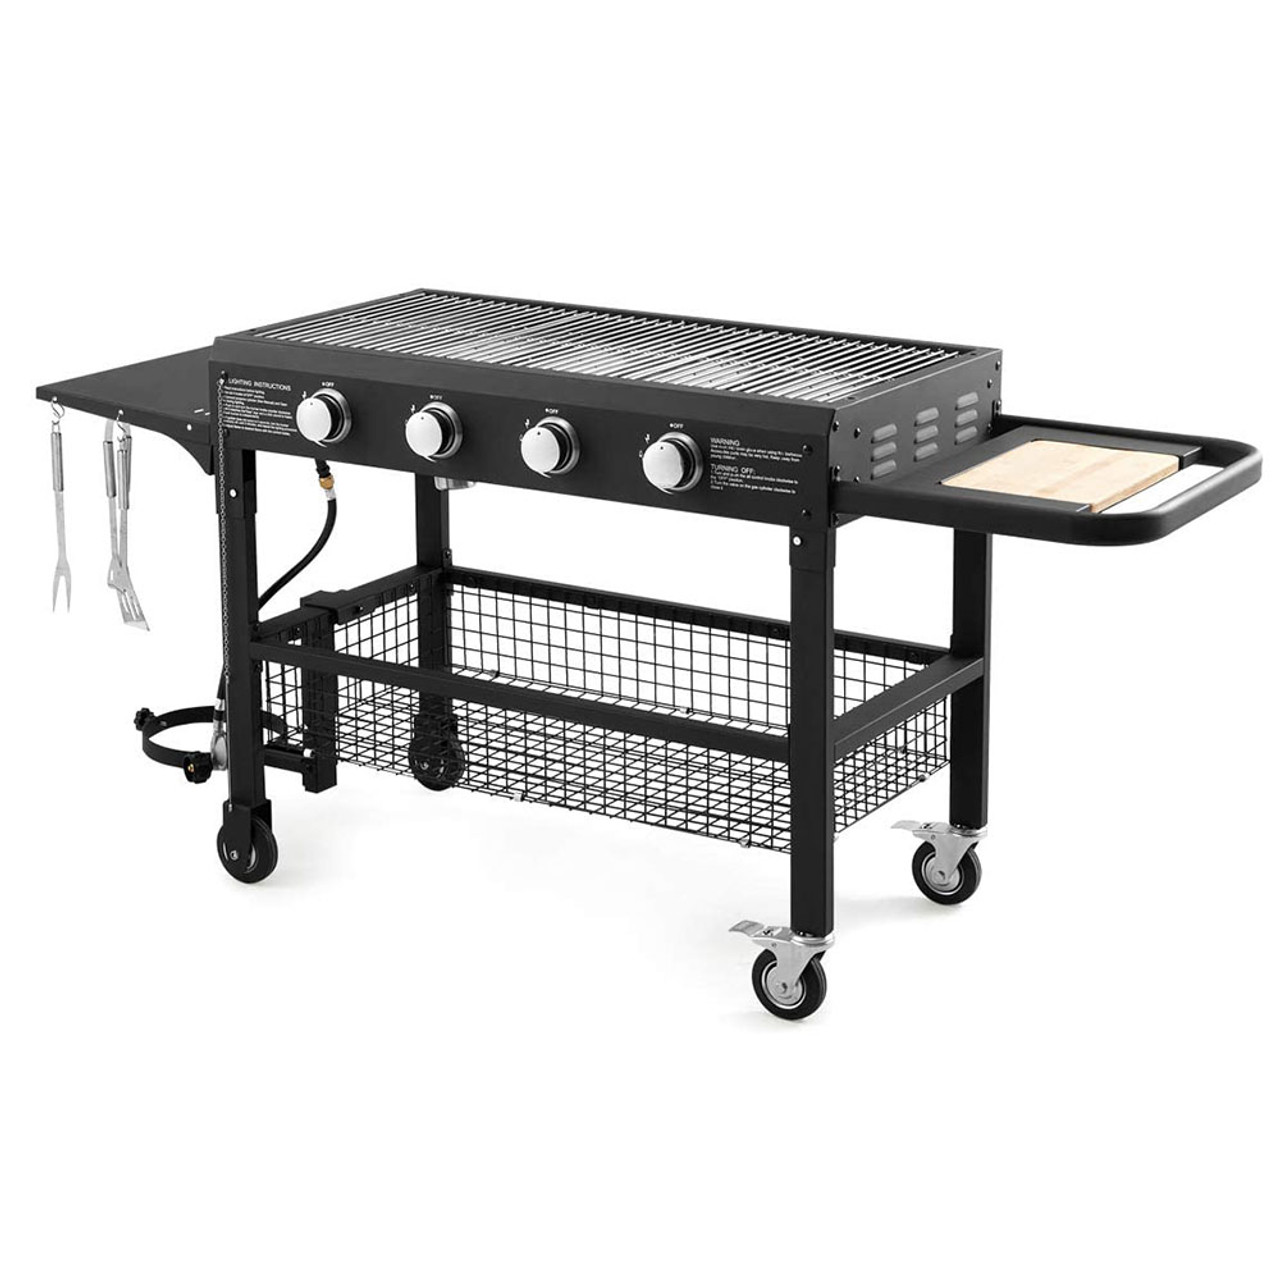 Rolling 4-Burner Propane Gas Grill! 9.99 (REG 9.99 ) + Free Shipping at Until Gone!